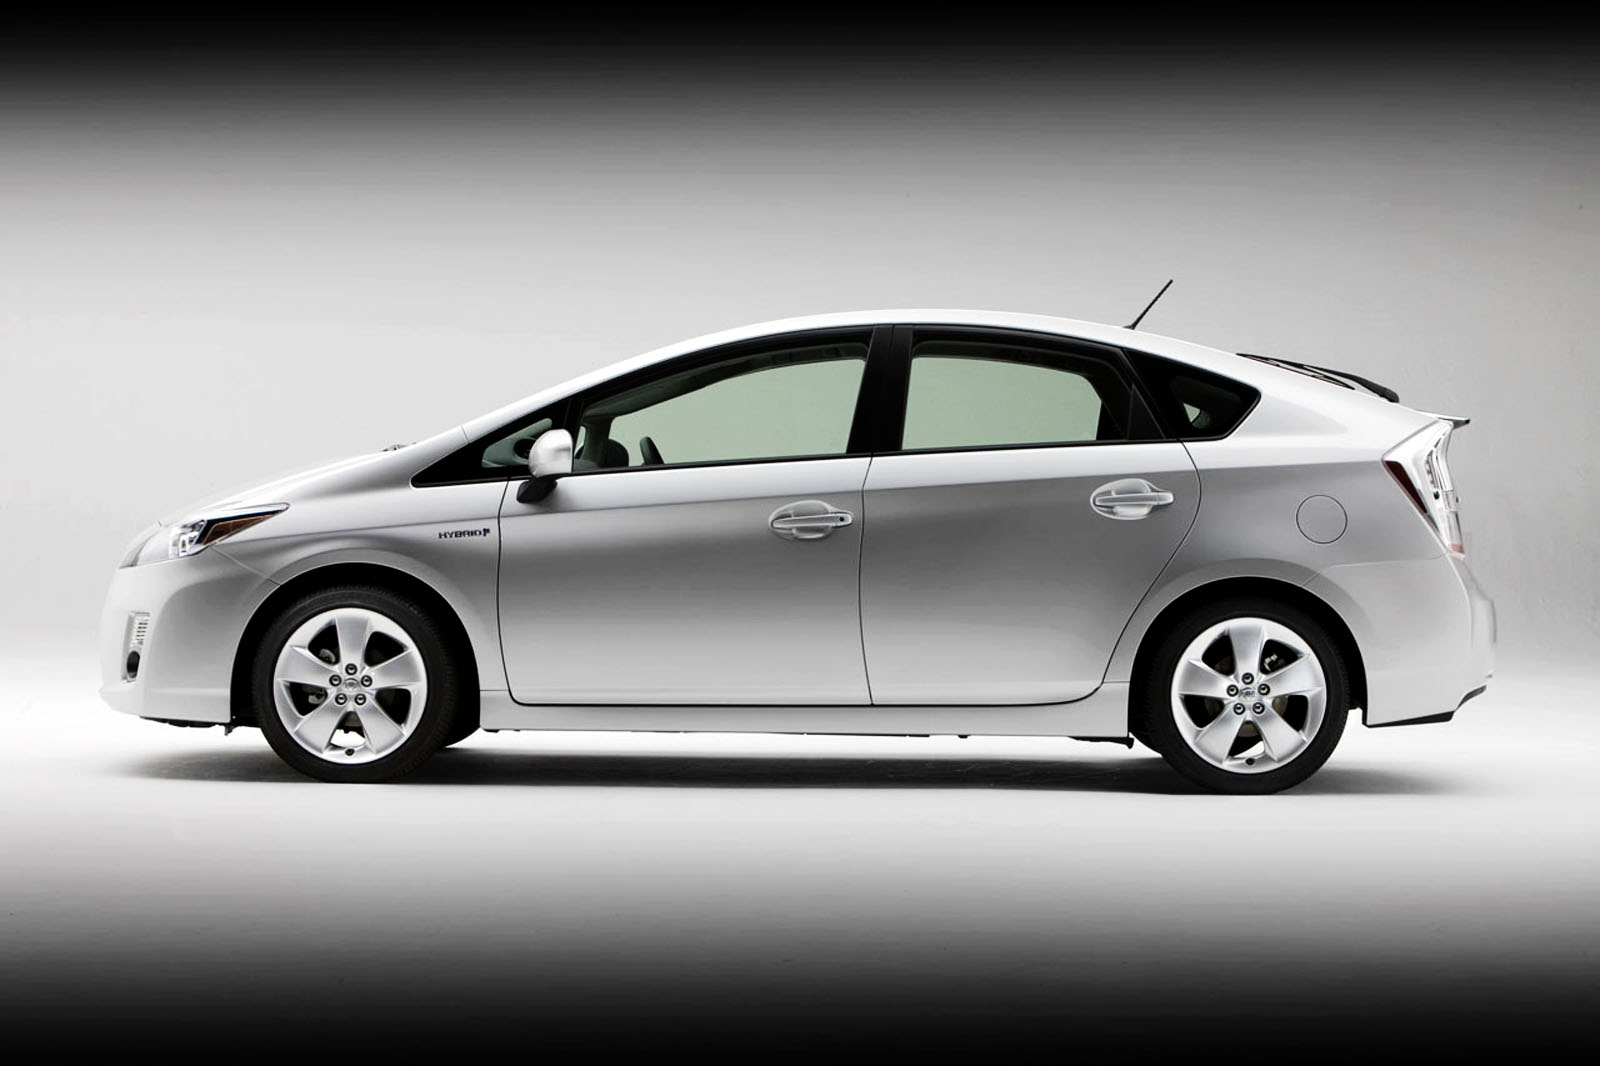 toyota prius hybrit car hd wallpapers hd wallpapers backgrounds photos pictures image pc. Black Bedroom Furniture Sets. Home Design Ideas